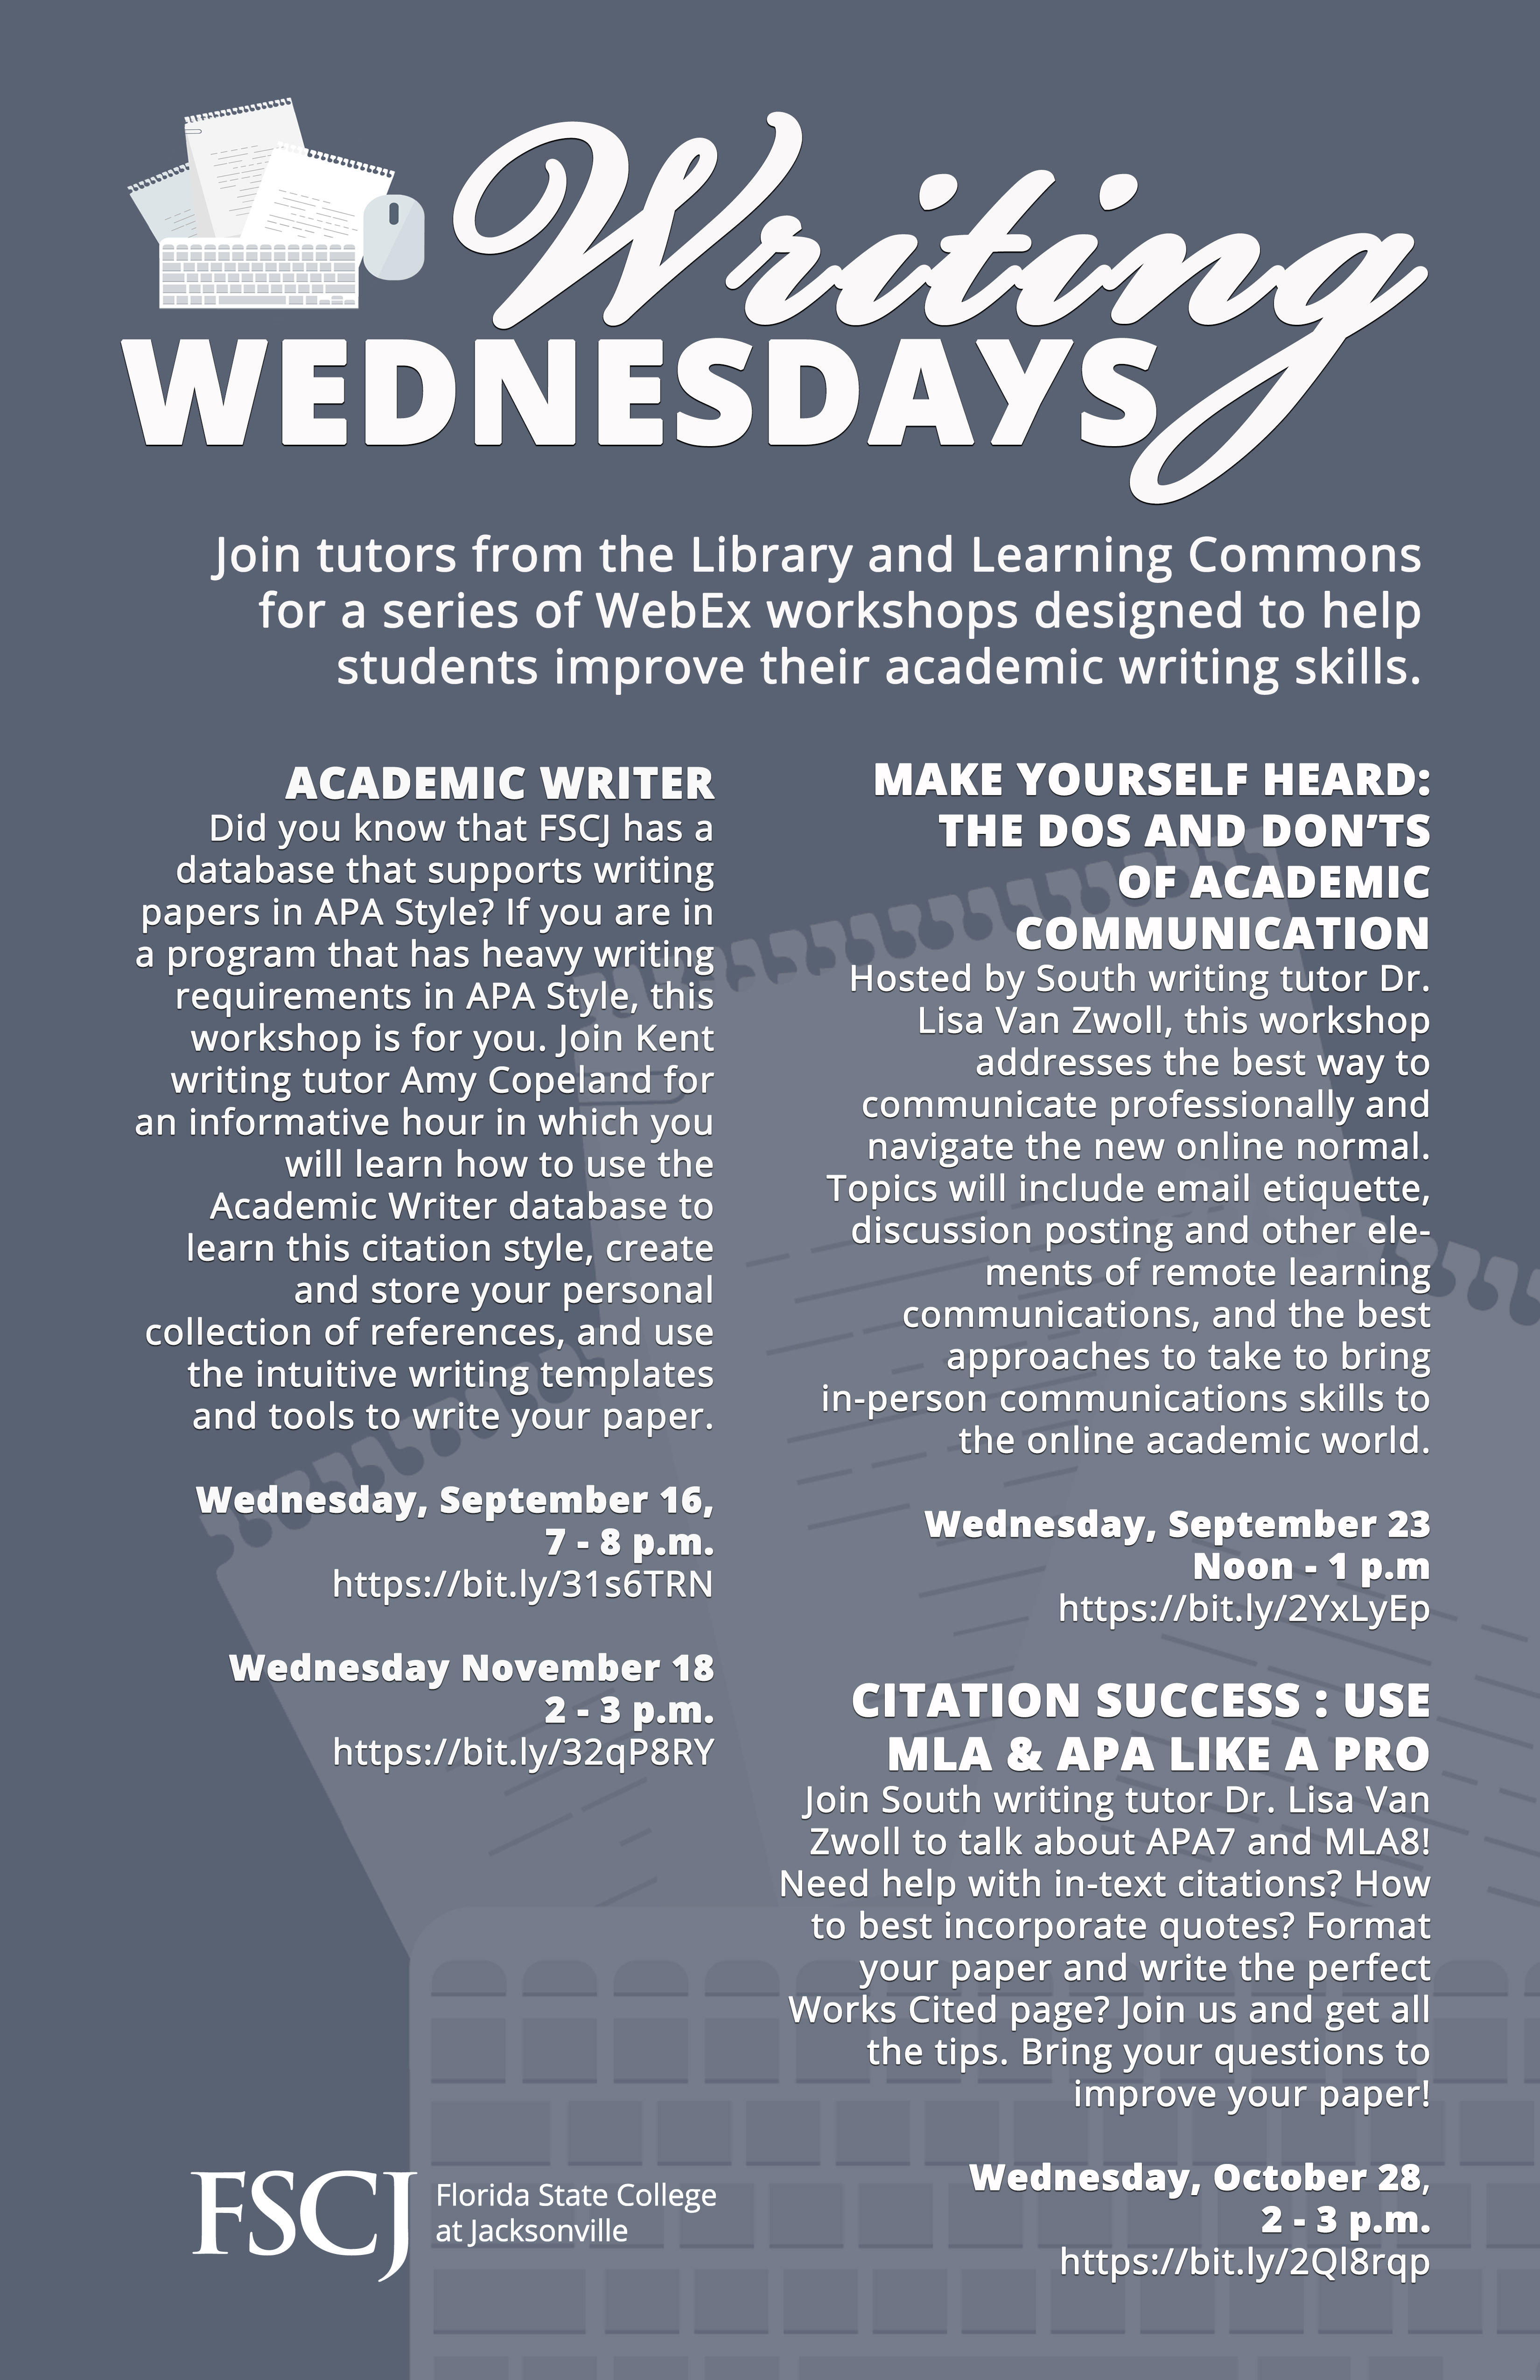 WRITING WEDNESDAYS: Make Yourself Heard - The Dos and Don'ts of Academic Communication